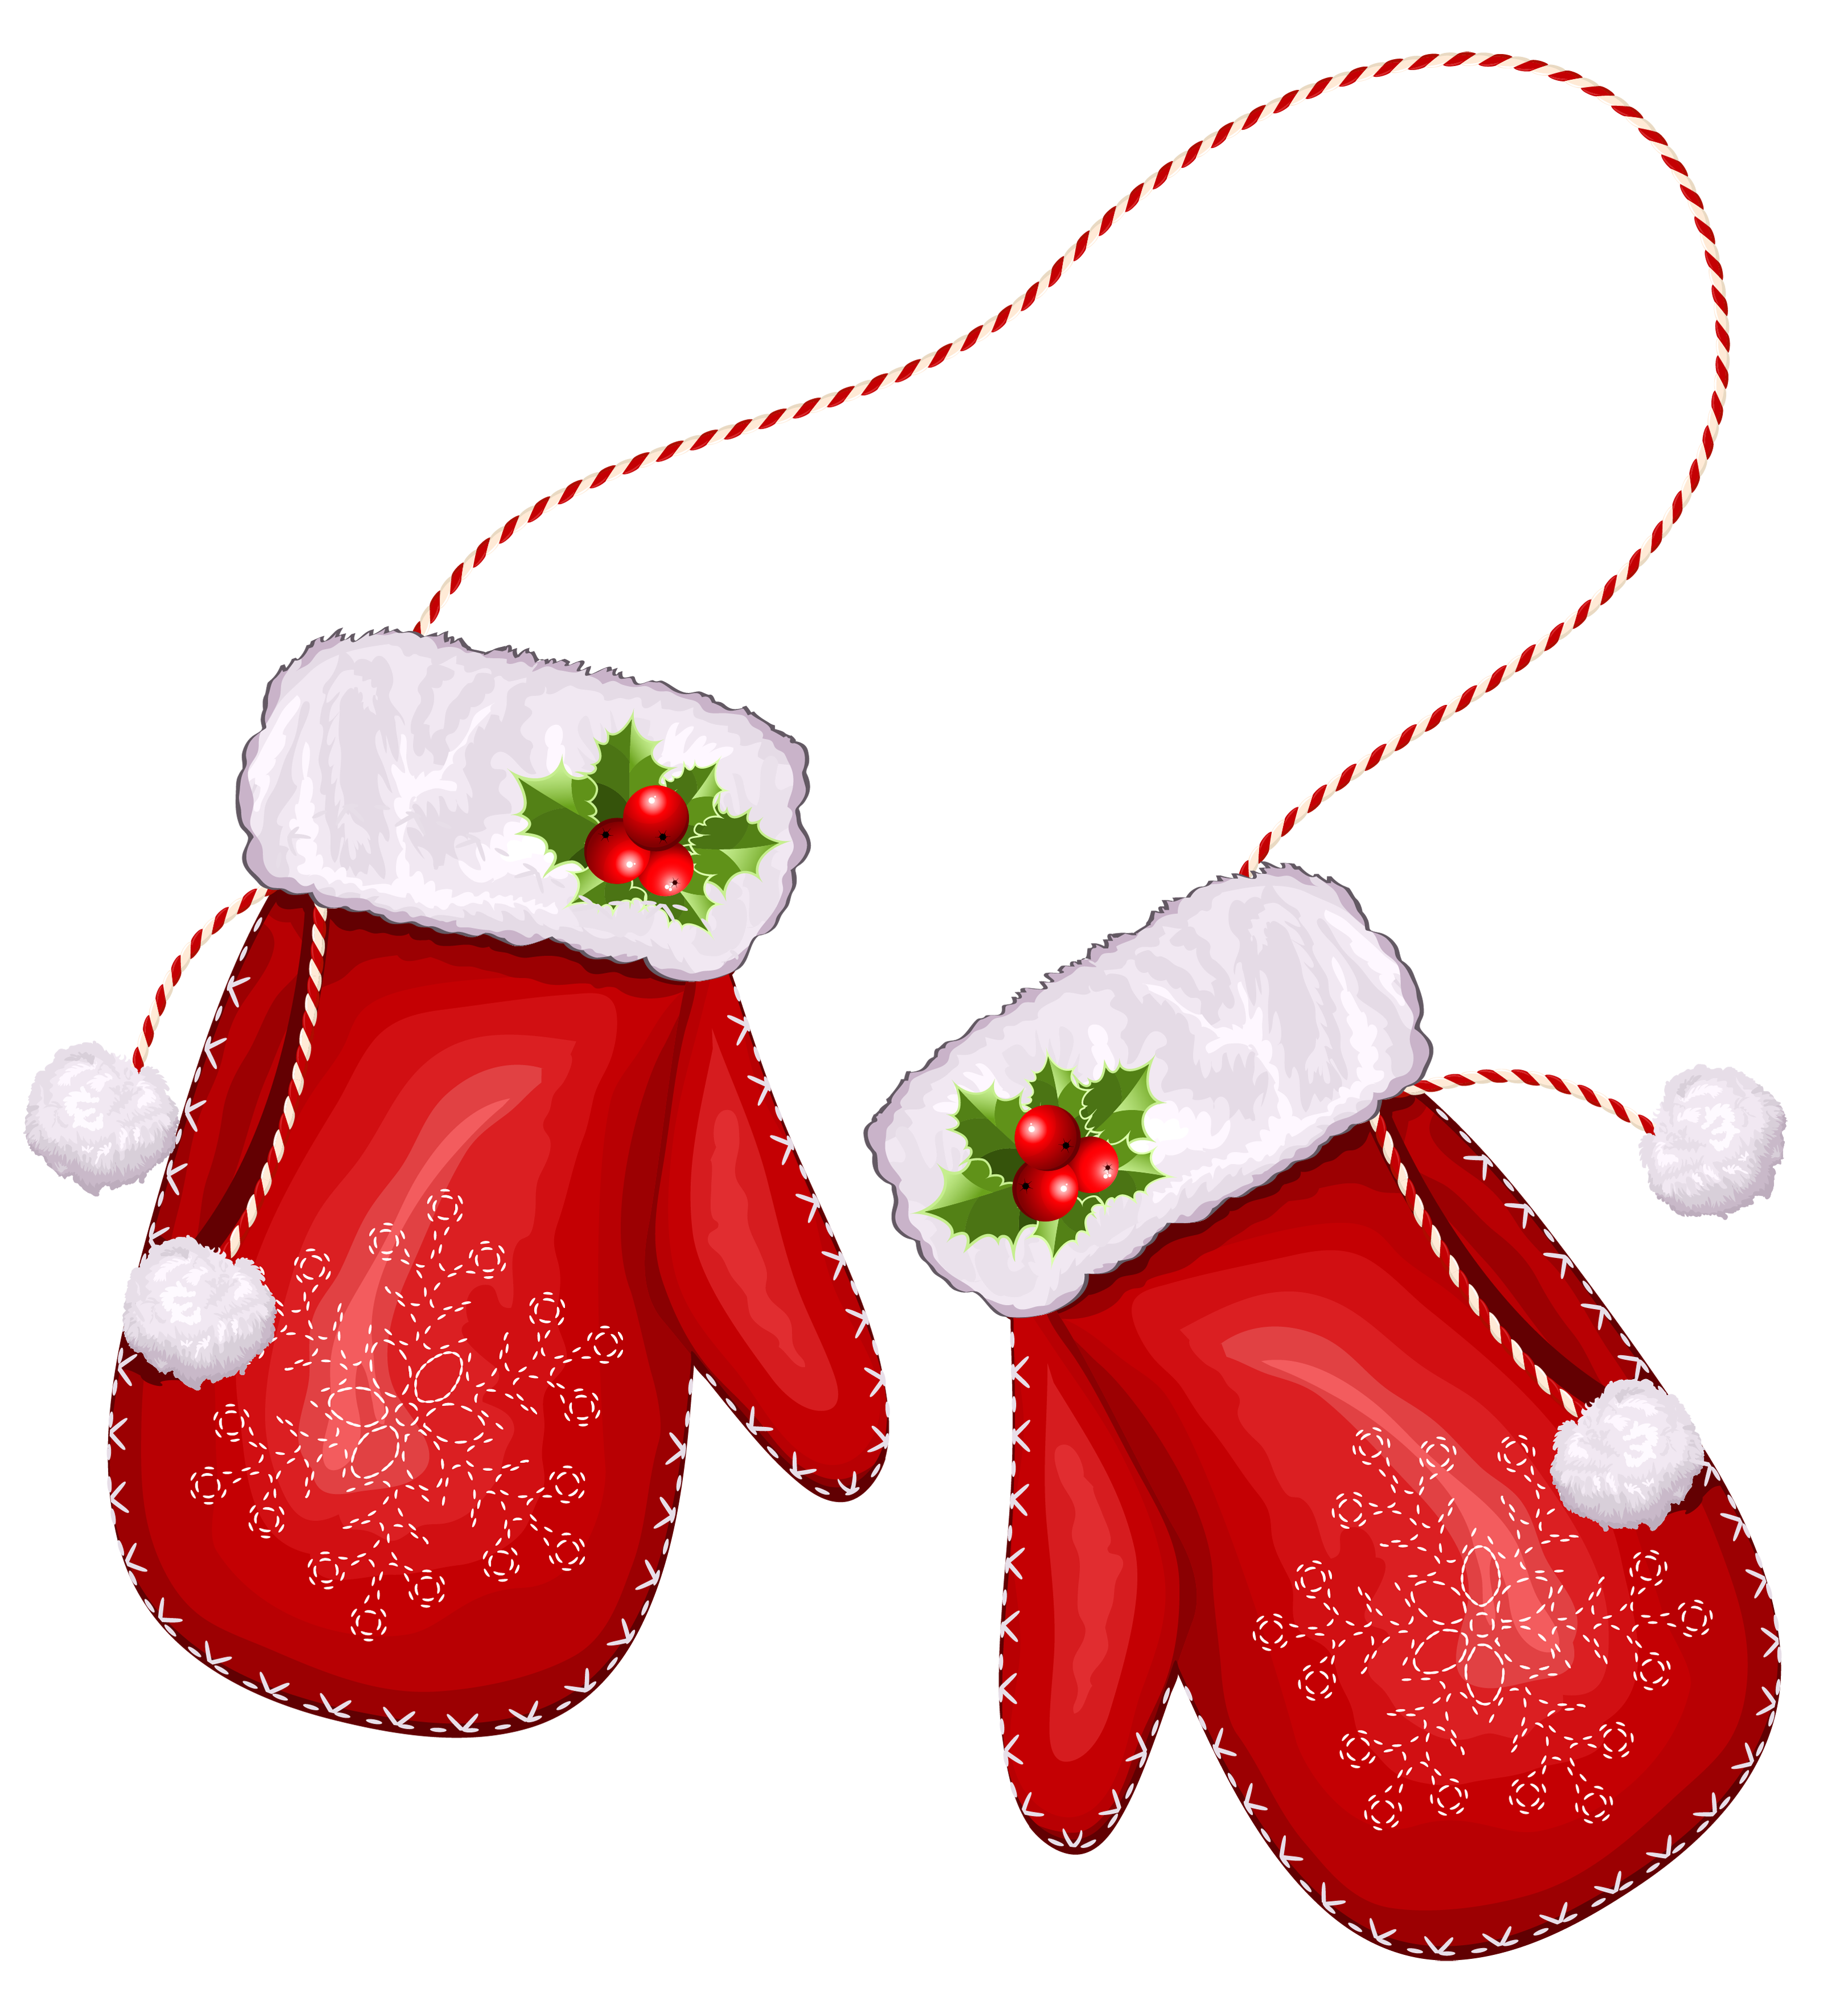 Glove Transparent Large Gloves Santa Christmas Red PNG Image